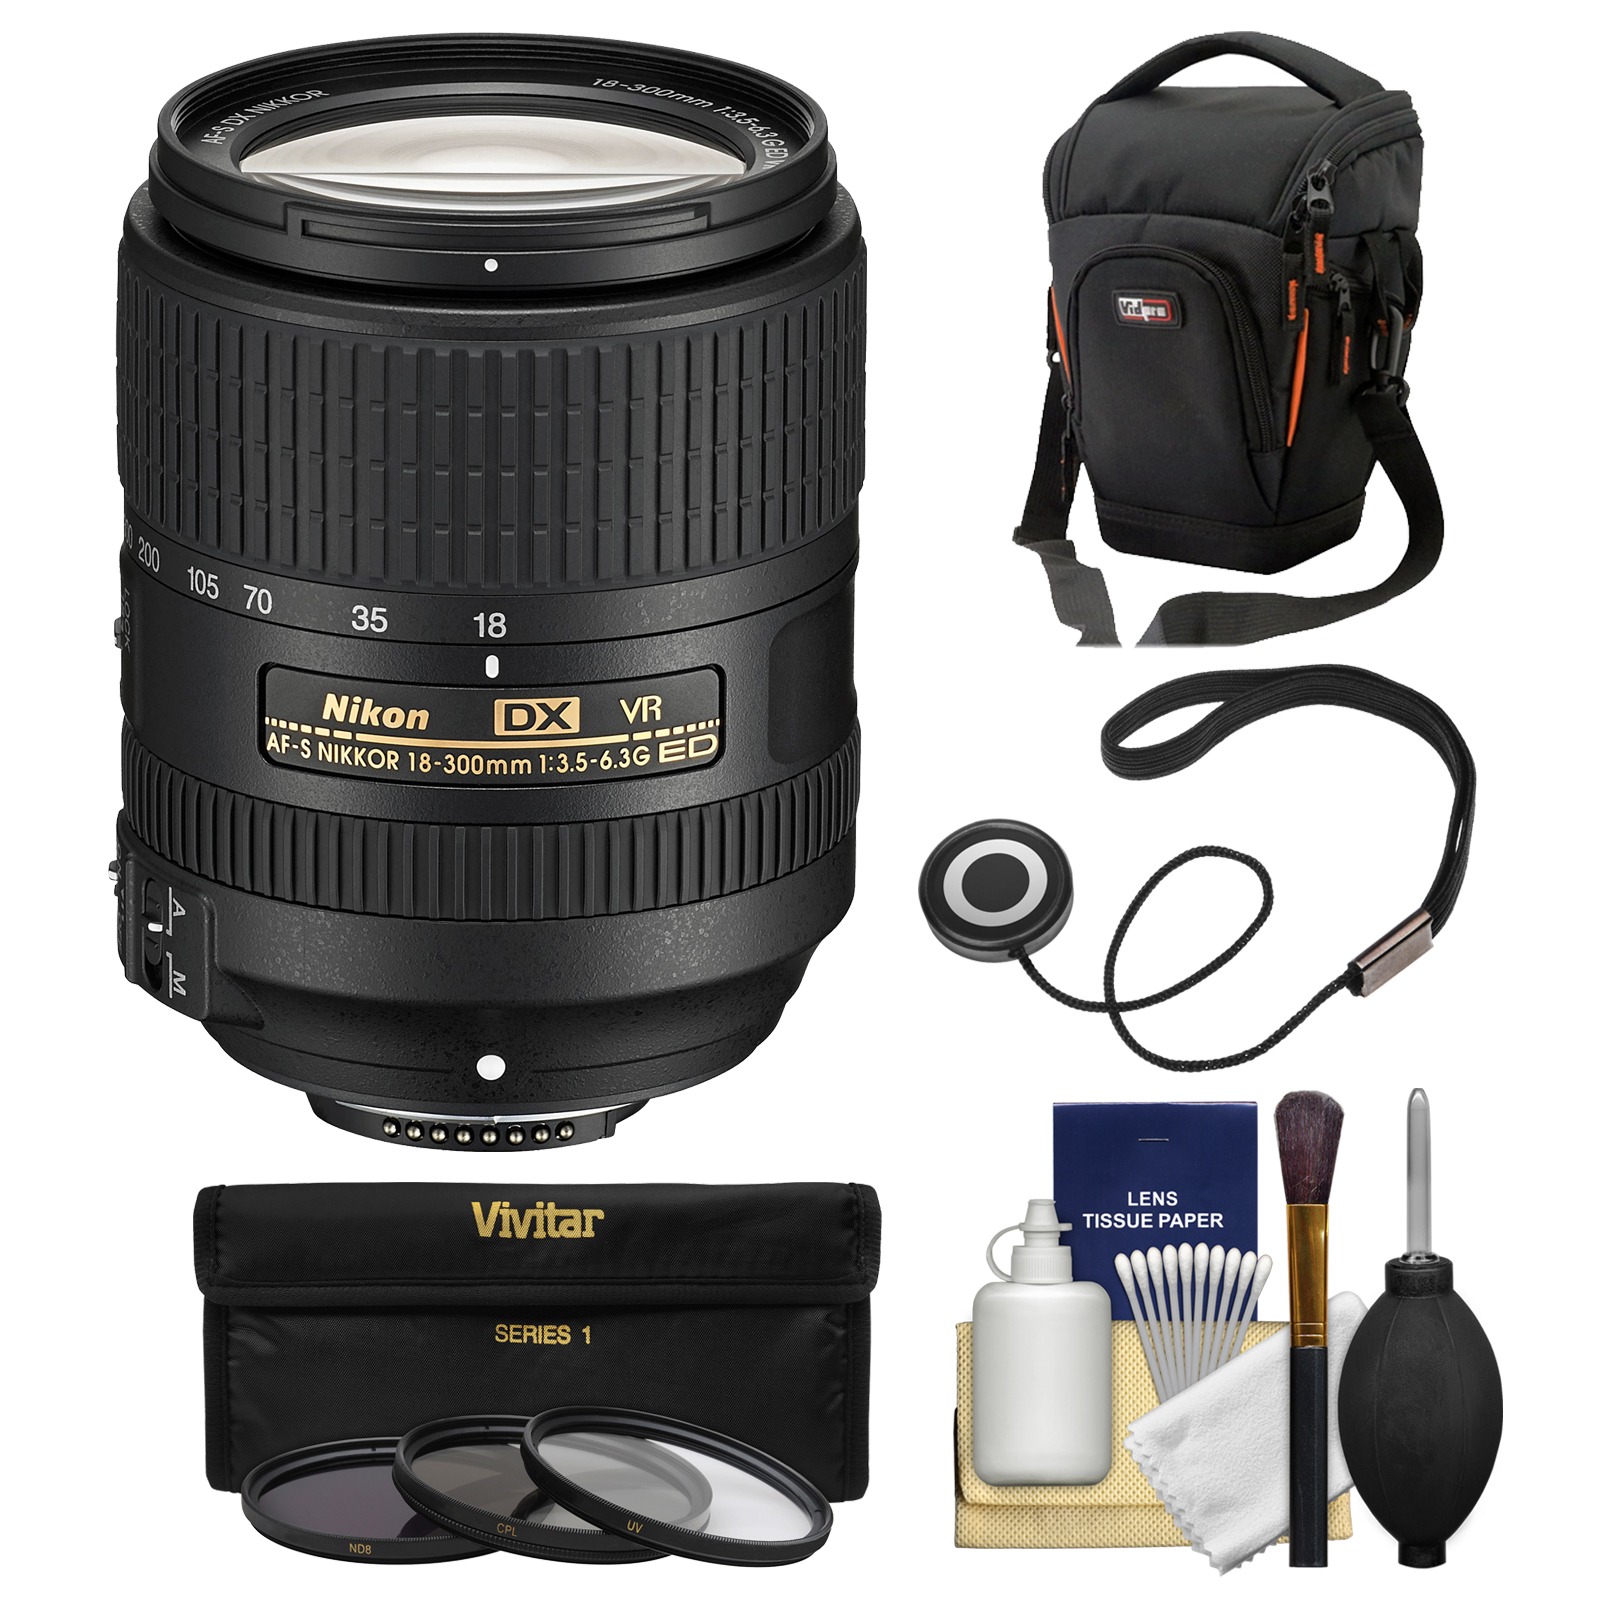 Nikon 18-300mm f/3.5-6.3G VR DX ED AF-S Nikkor-Zoom Lens with Case + 3 UV/CPL/ND8 Filters + Kit for D3200, D3300, D5300, D5500, D7100, D7200 Cameras